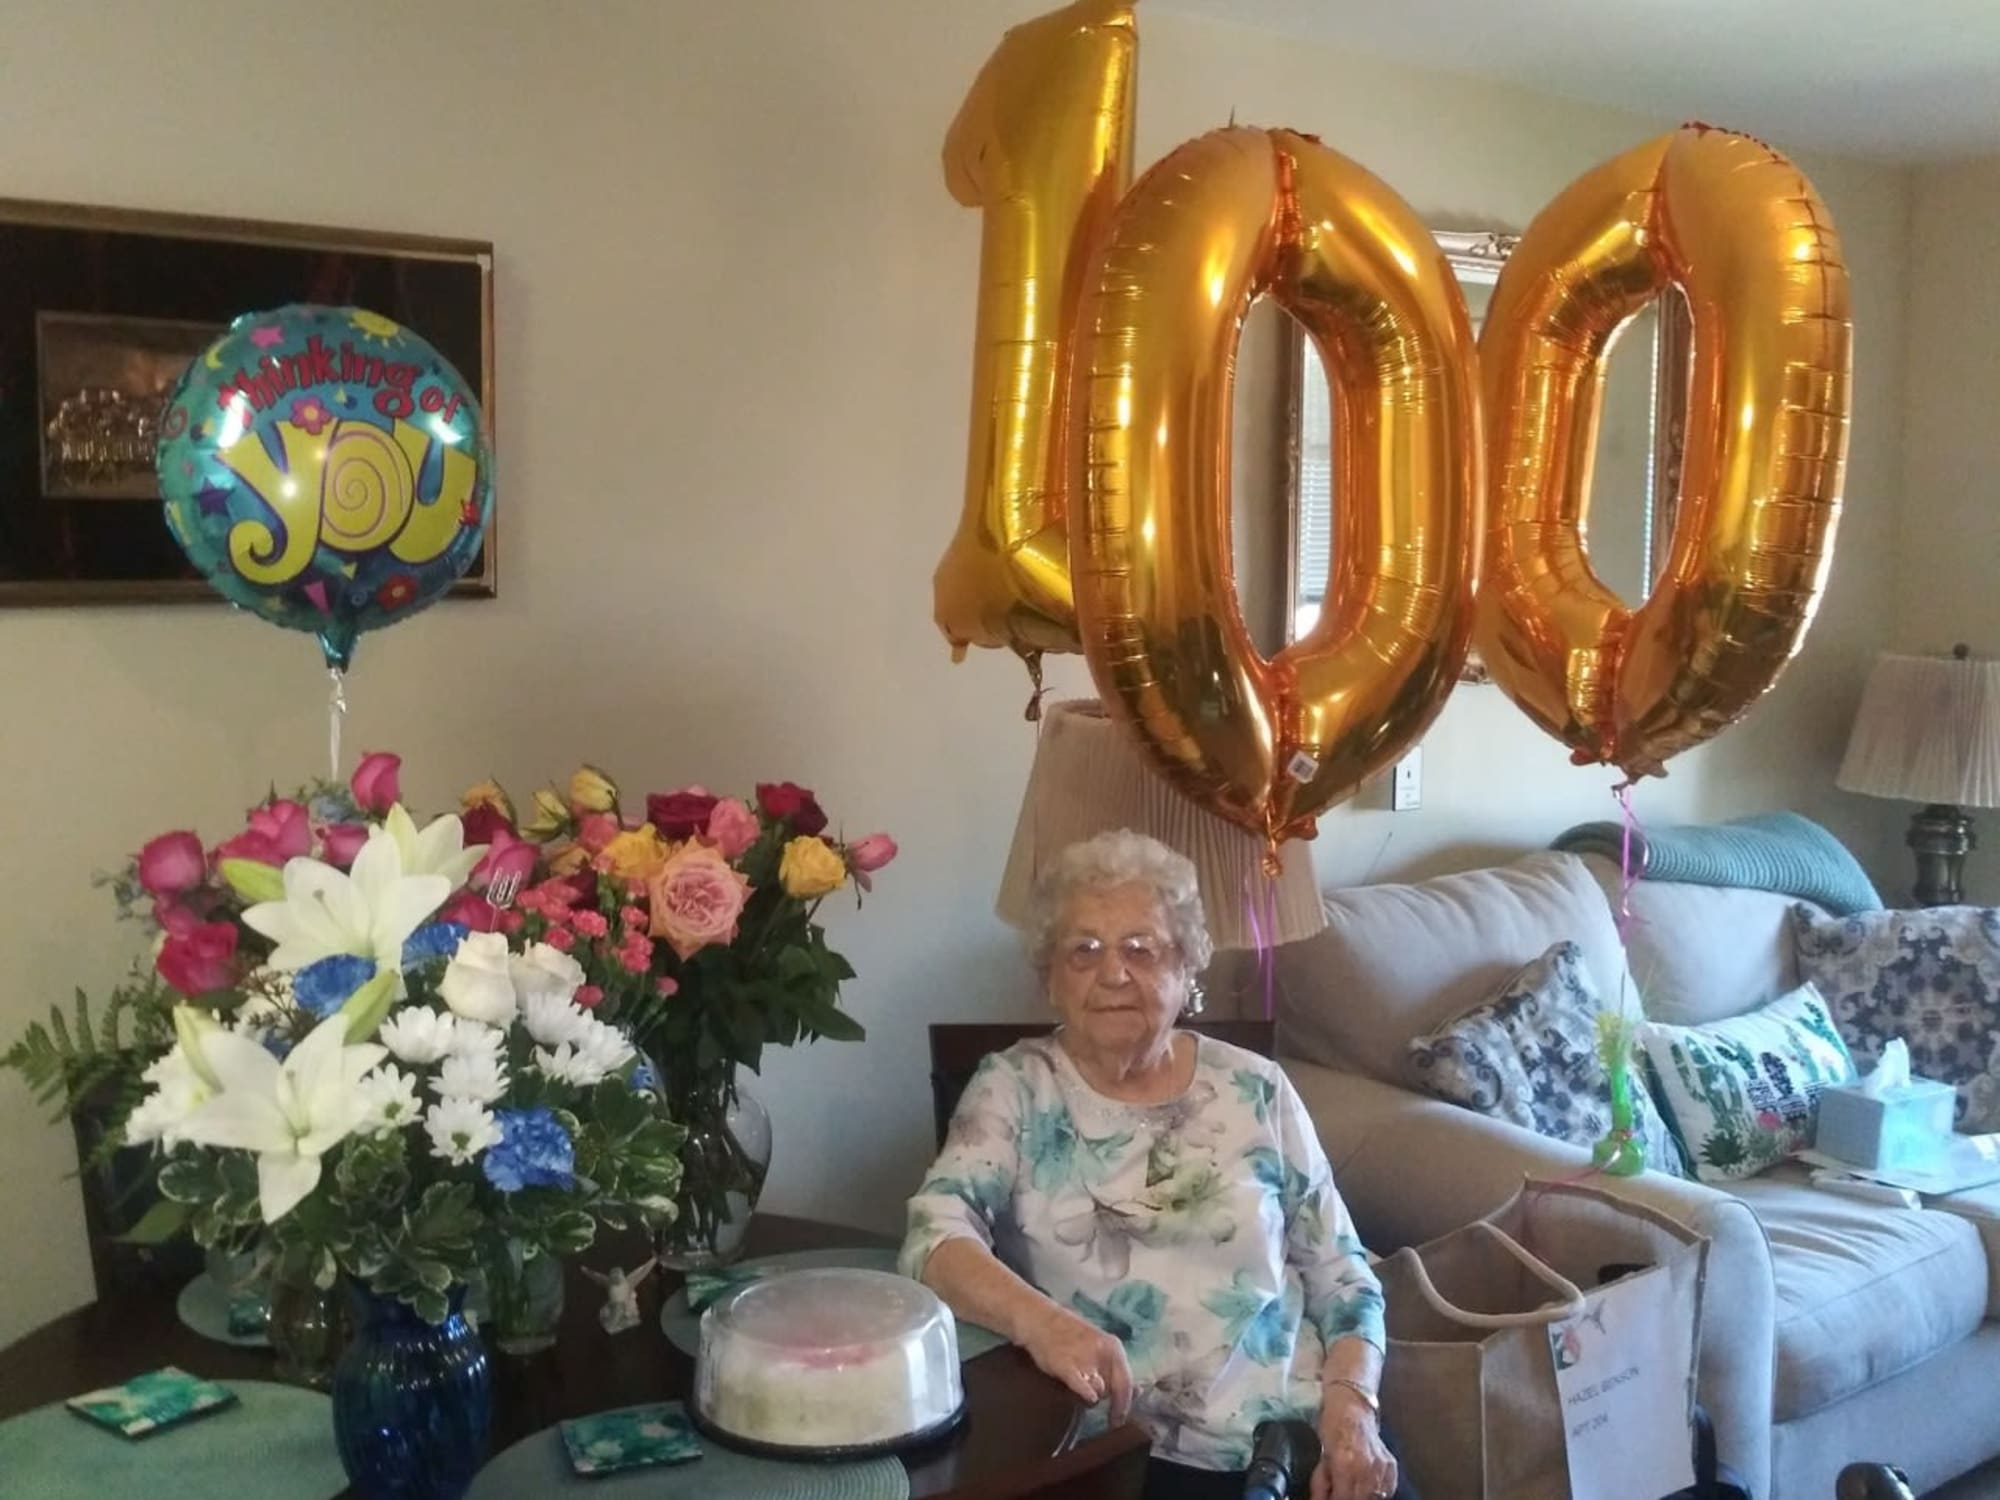 100th birthday at The Commons at Union Ranch in Manteca, California